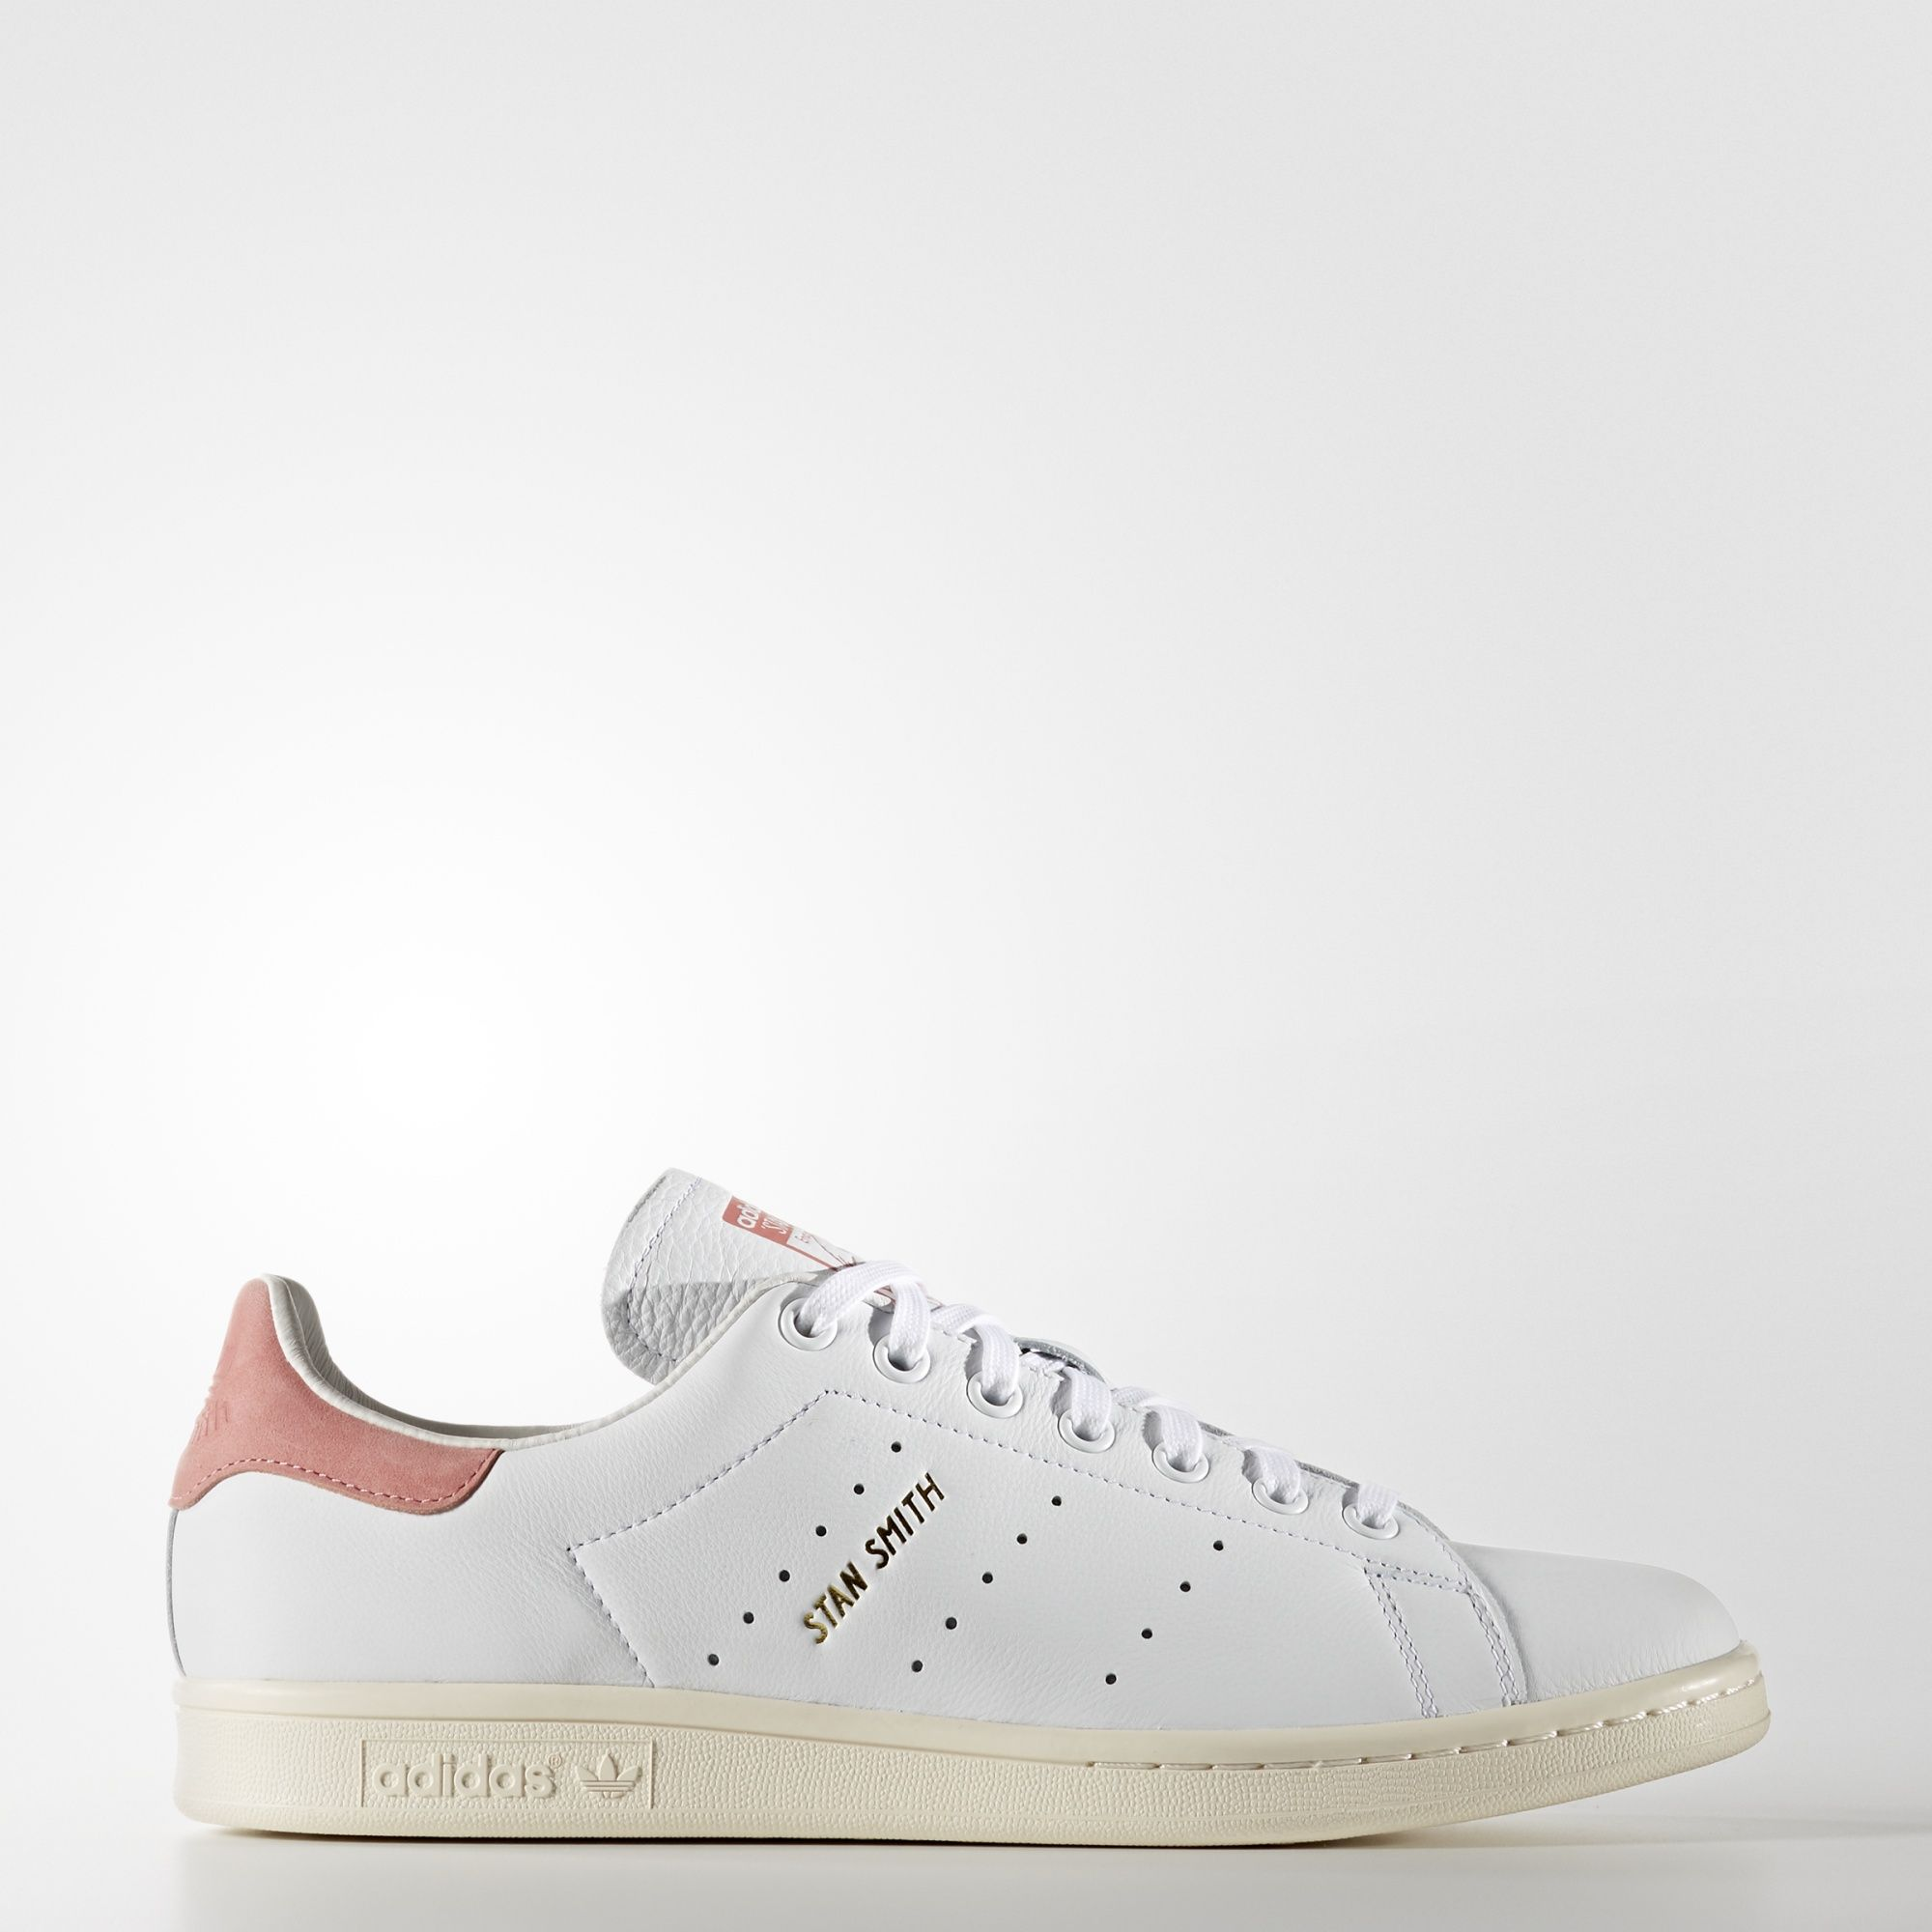 38 23 | Chaussures stan smith, Adidas stan et Chaussure